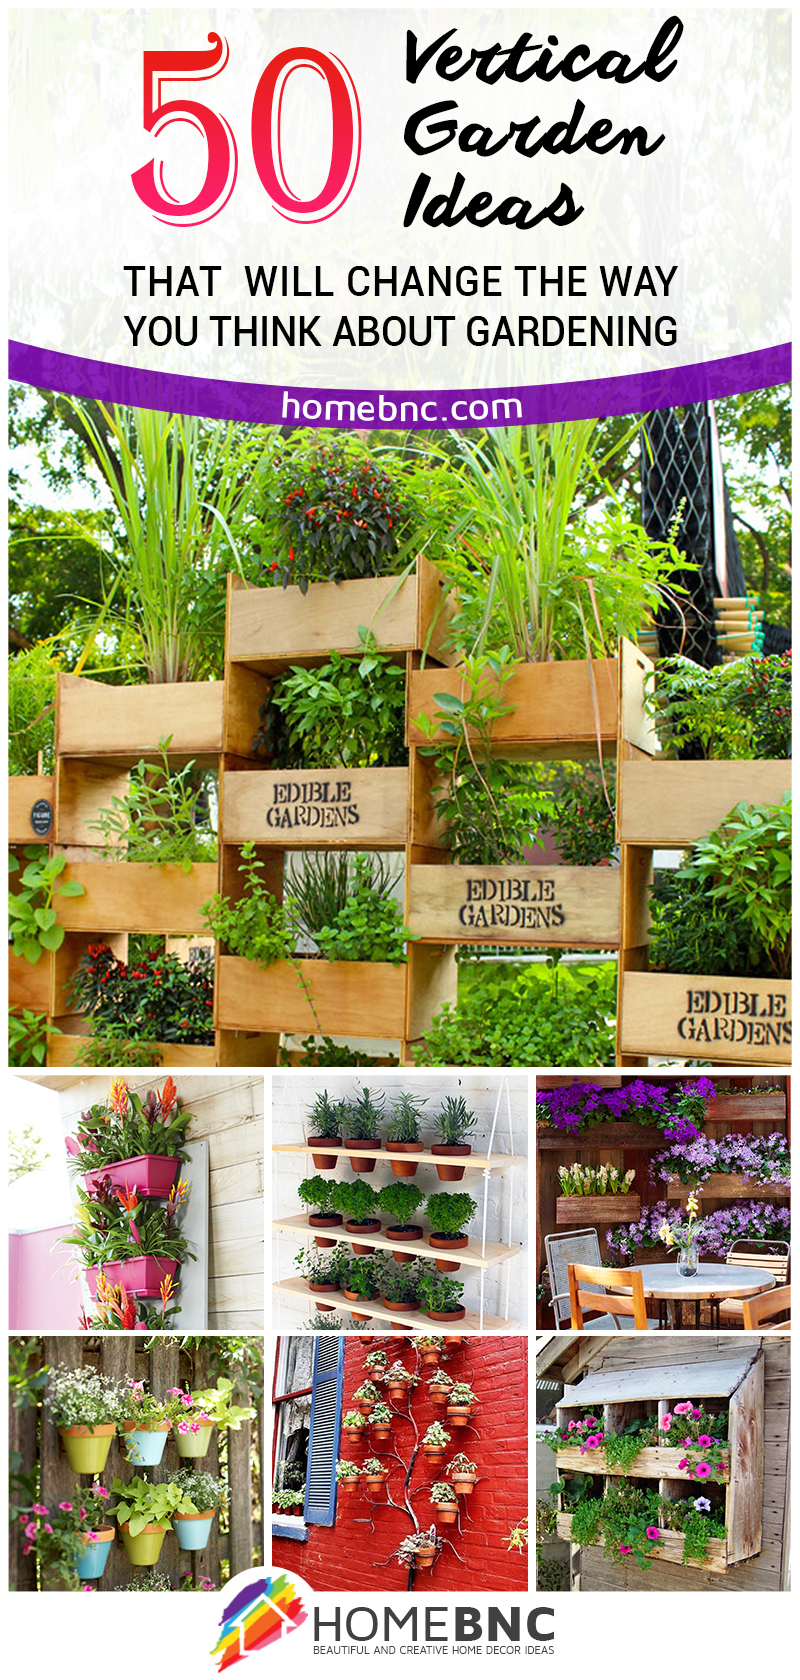 The 50 best vertical garden ideas and designs for 2017 for Plan your garden ideas